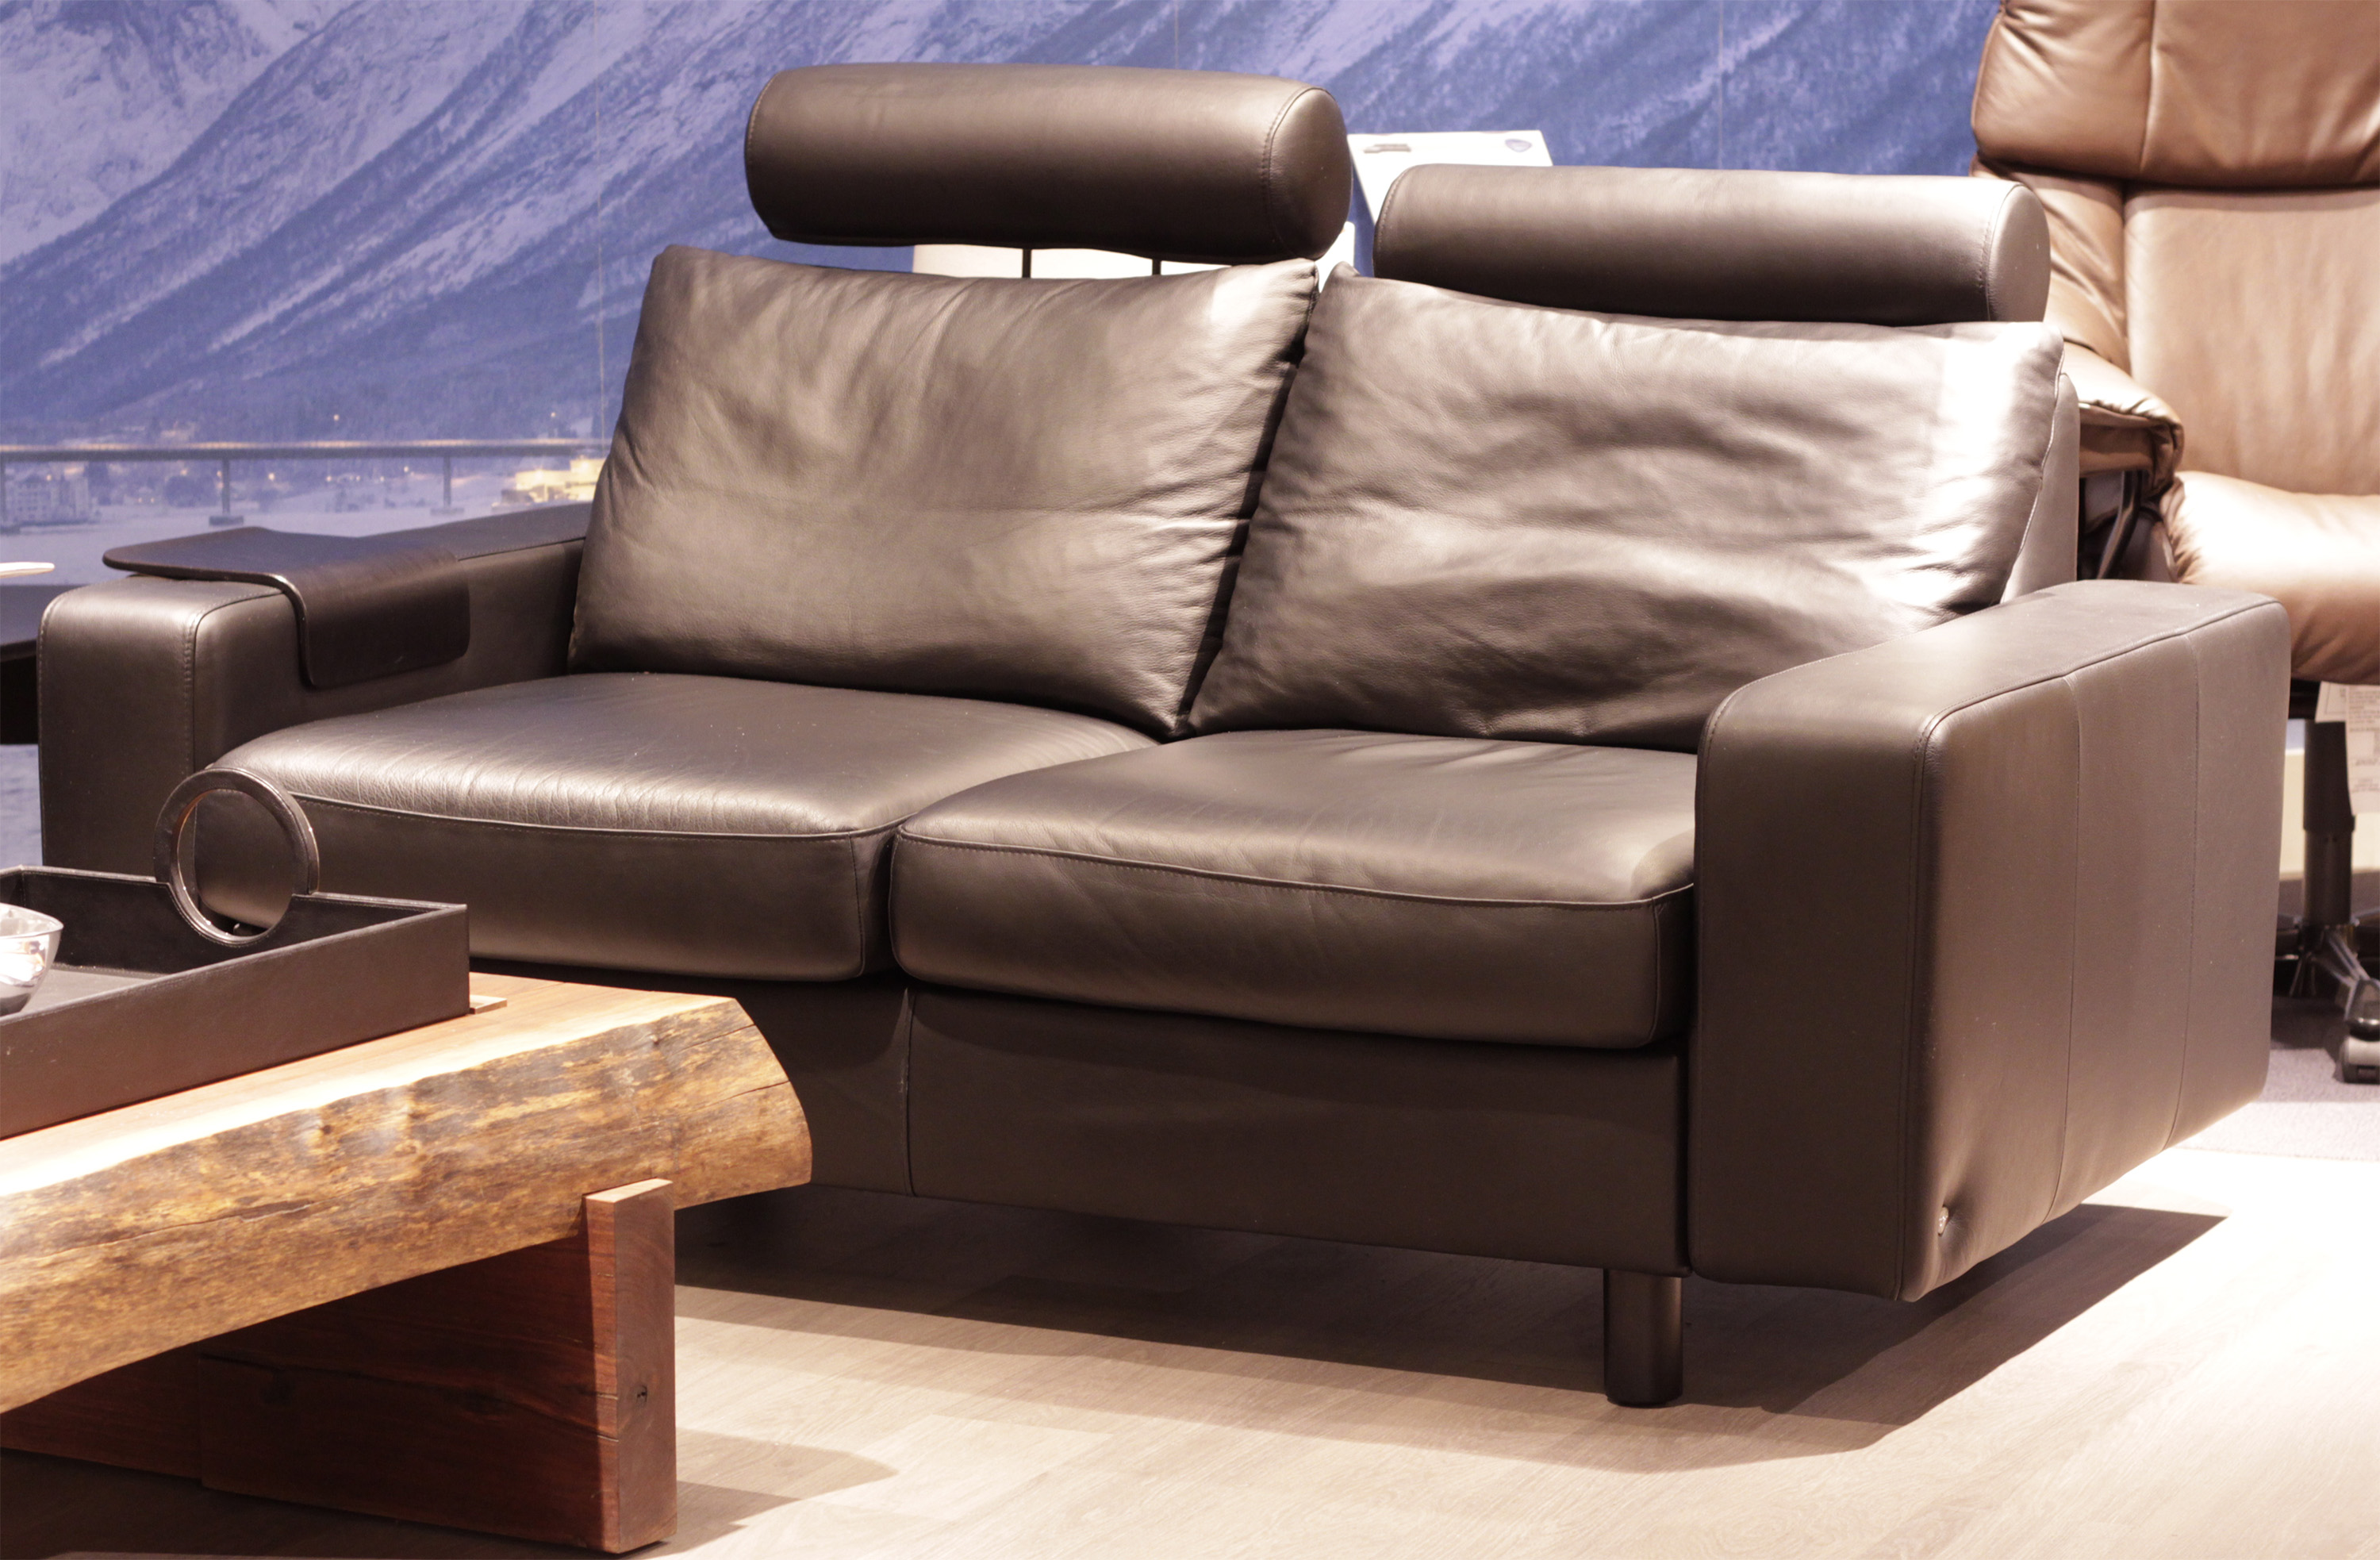 Stressless E200 Loveseat Sofa in Paloma Rock Leather by Ekornes ...